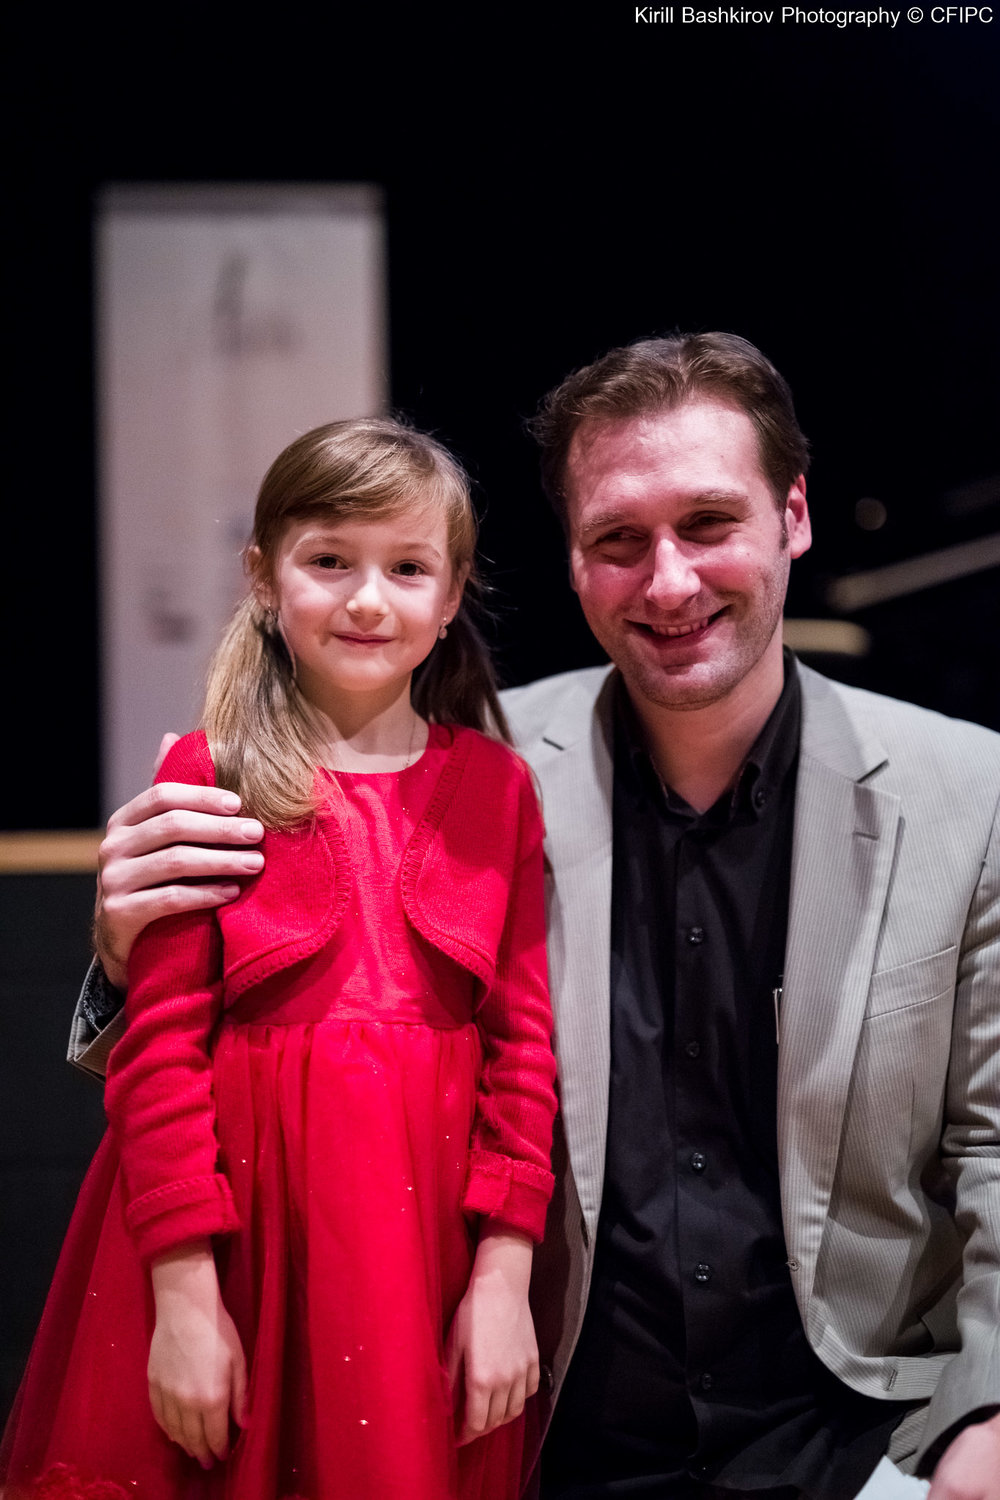 Philippe Raskin (Artistic Director) with our youngest participant ever - 6 years old Arianna Castellani (Italy)!